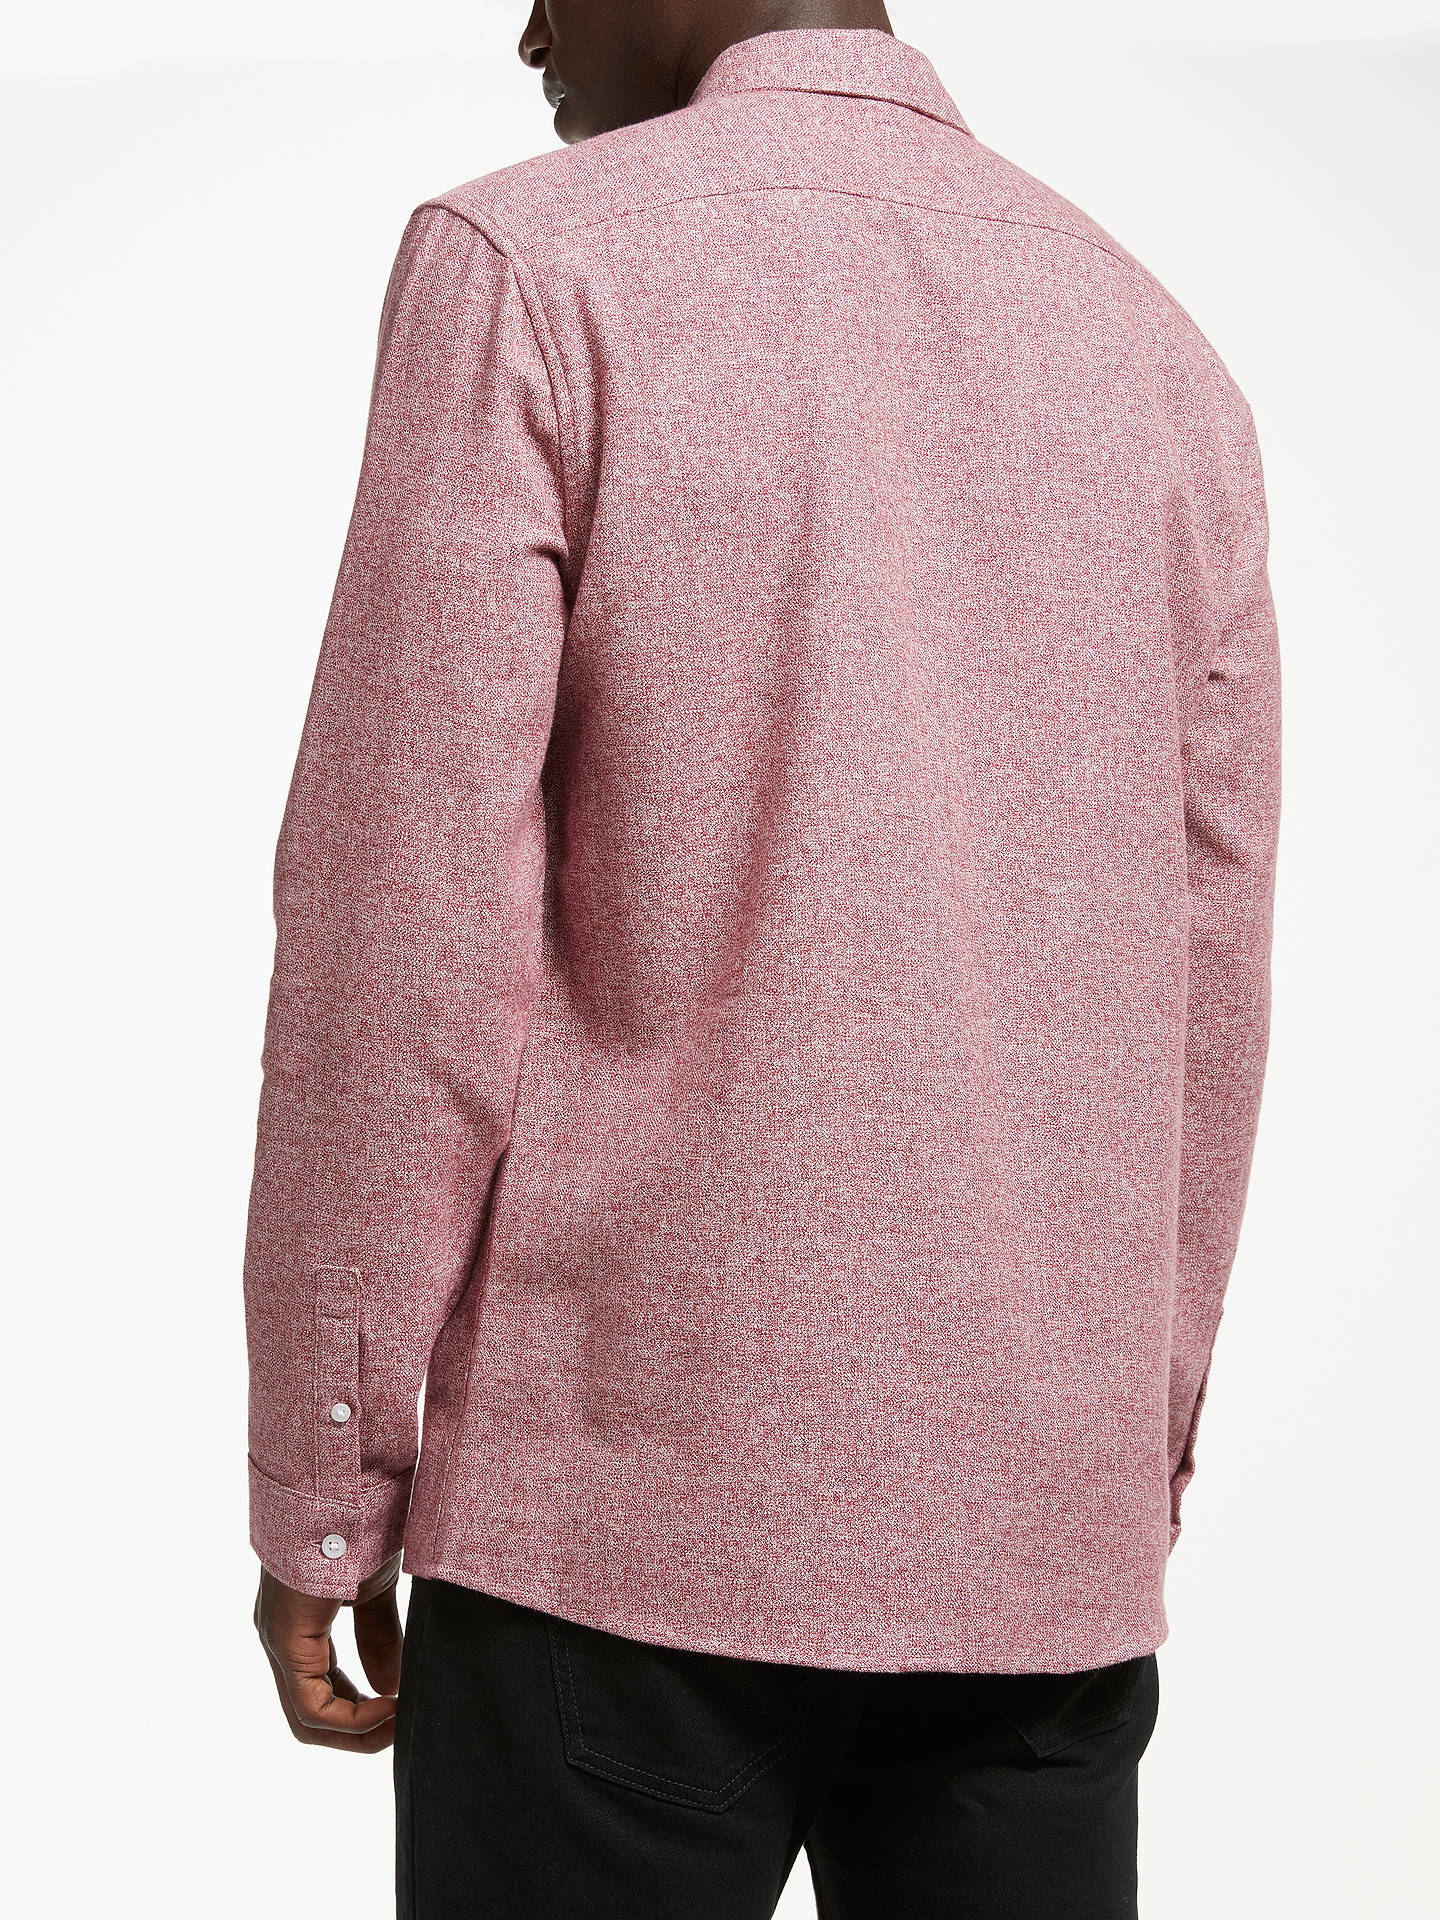 d0e75e2ef ... Buy Kin Compact Berry Grindle Shirt, Burgundy, S Online at  johnlewis.com ...